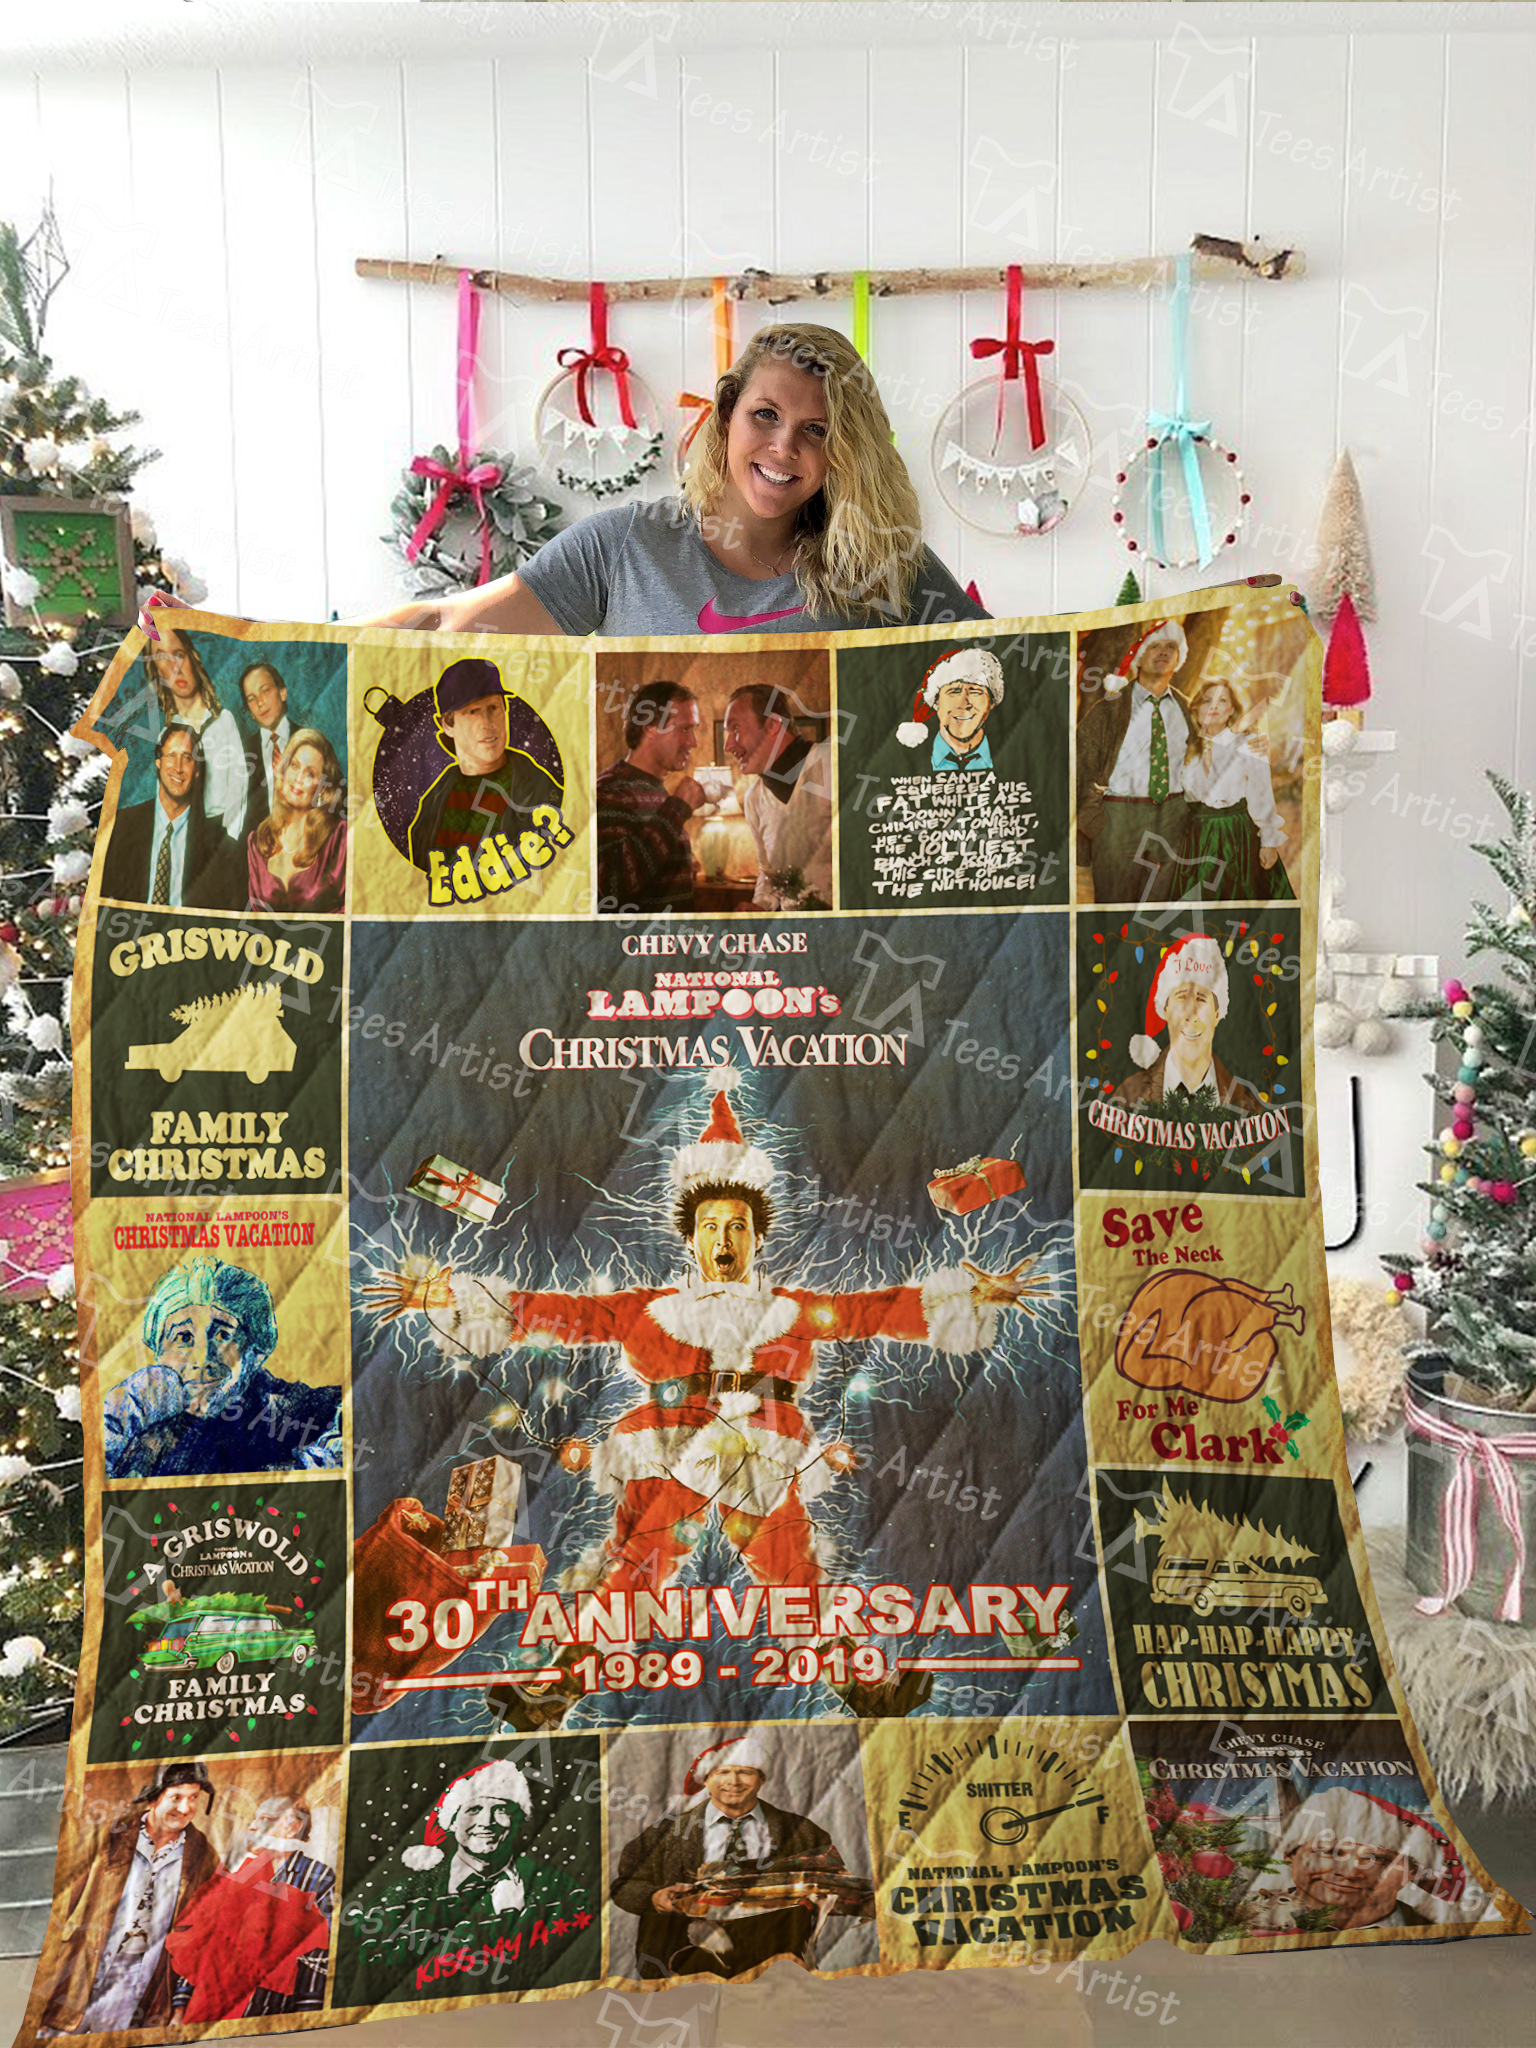 National lampoon's christmas vacation 30th anniversary quilt 1